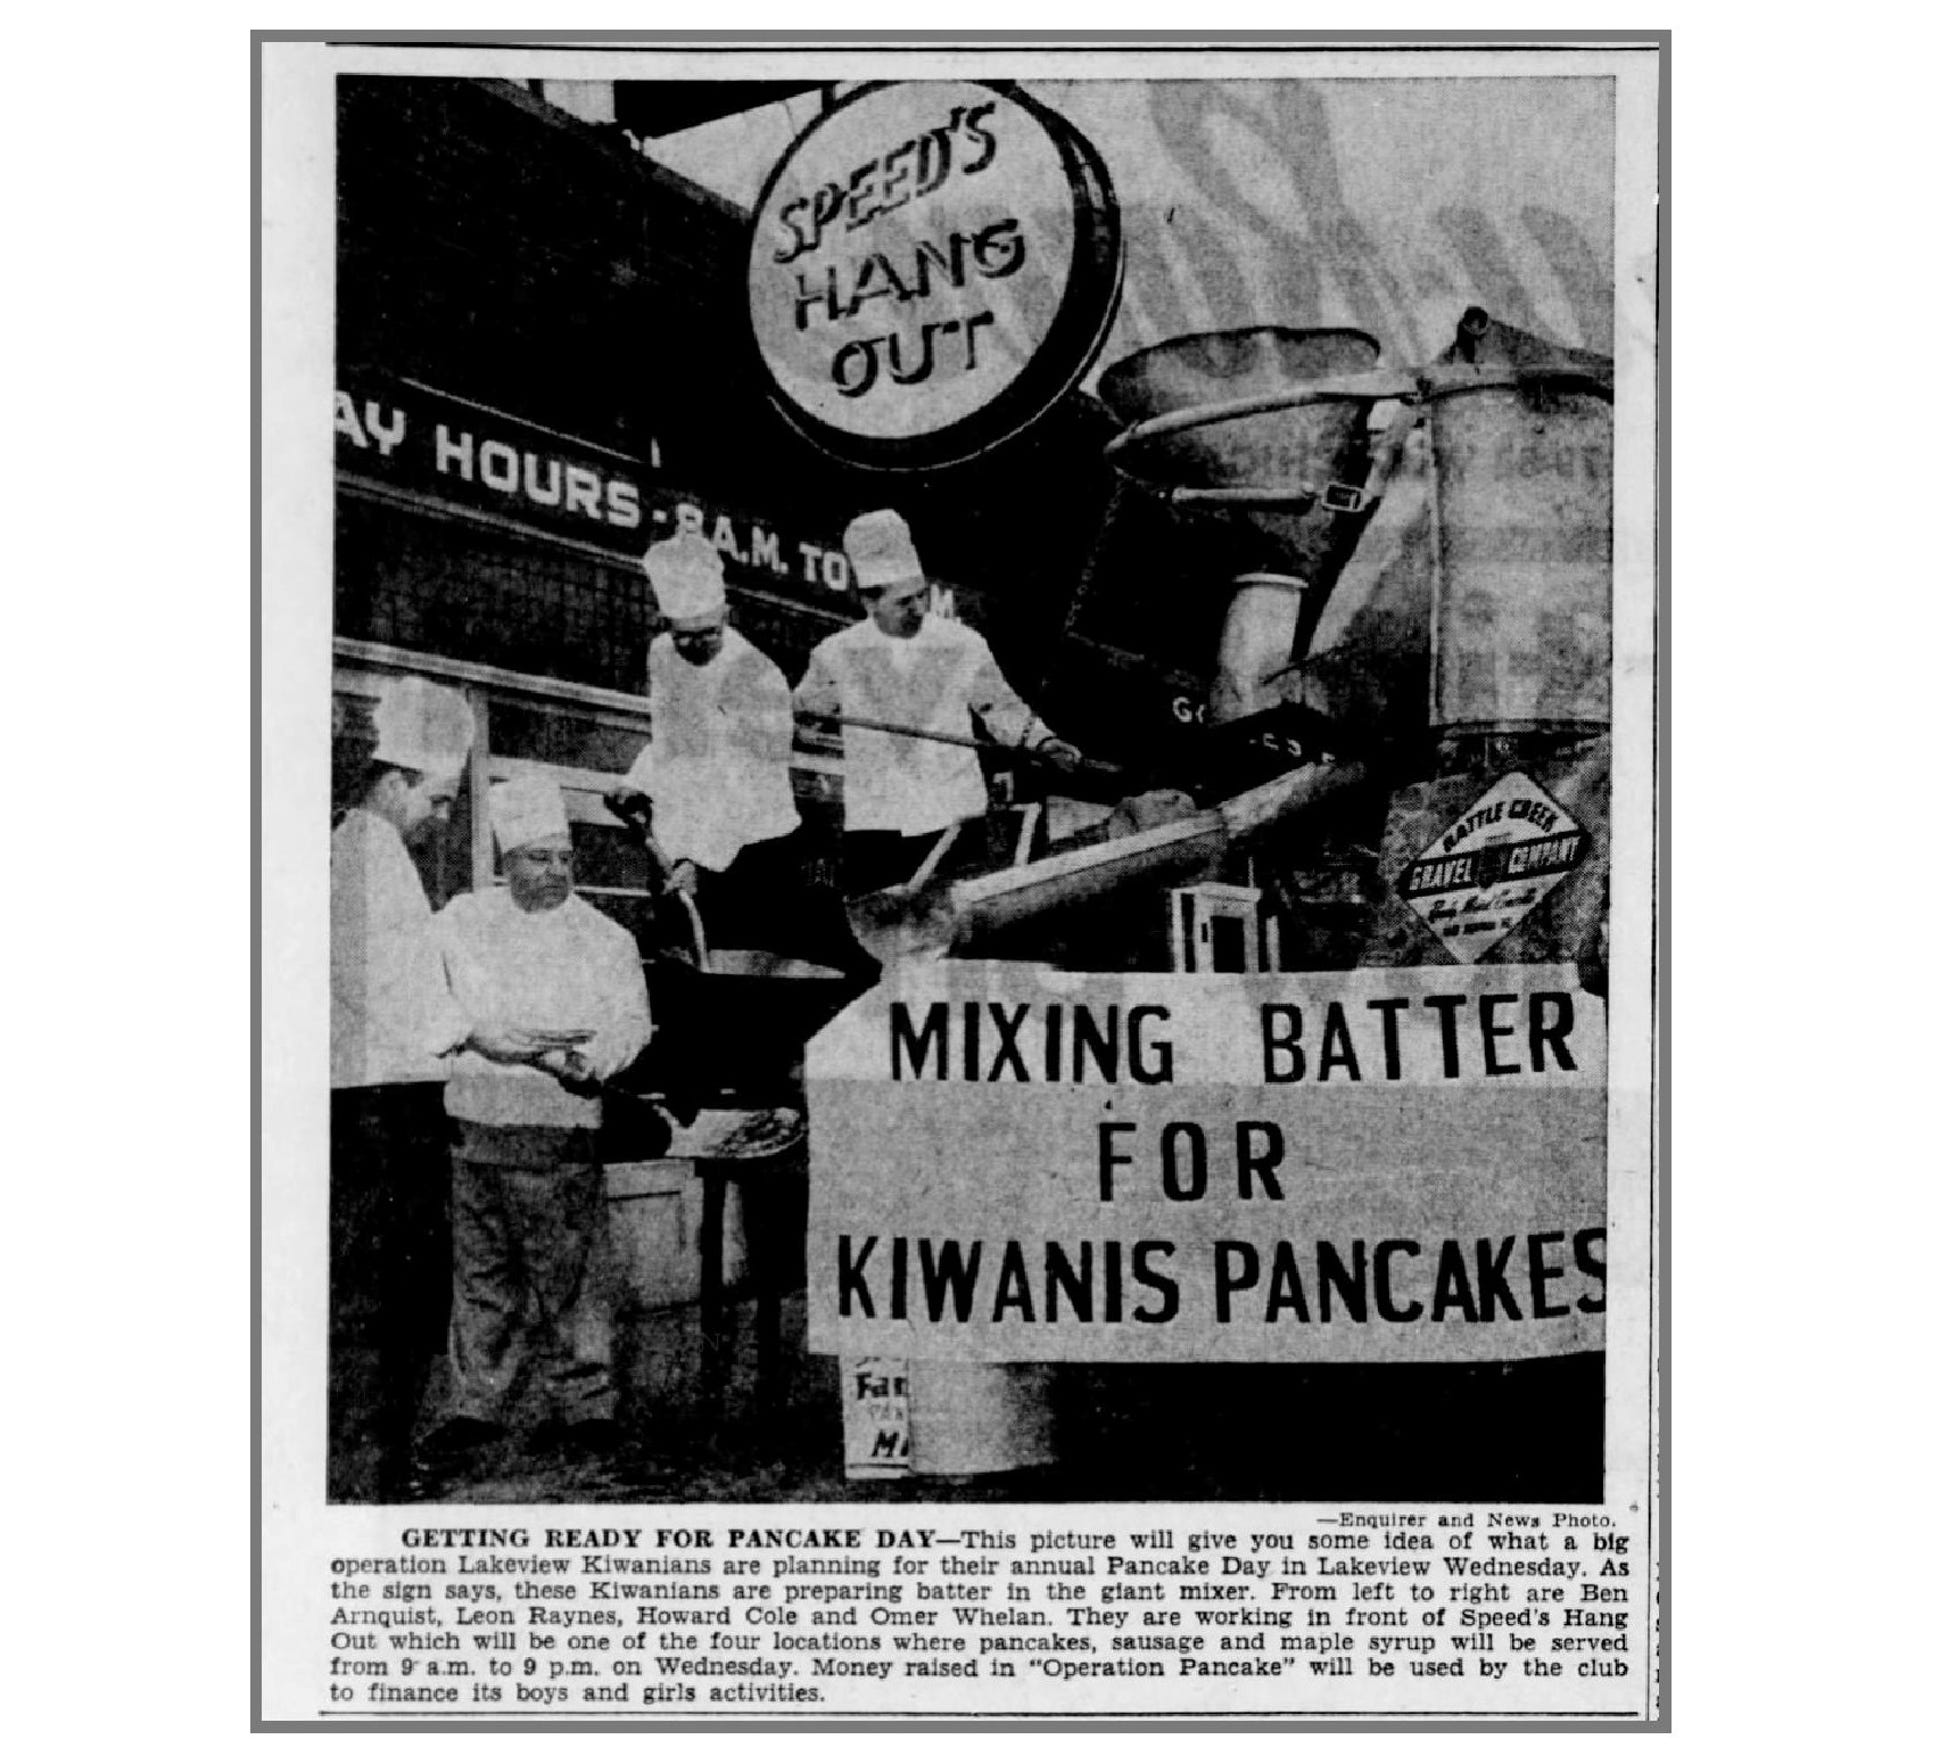 In this March 27, 1955 photo in the Battle Creek Enquirer, the Lakeview Kiwanians plan for Pancake Day in front of Speed's Hangout.